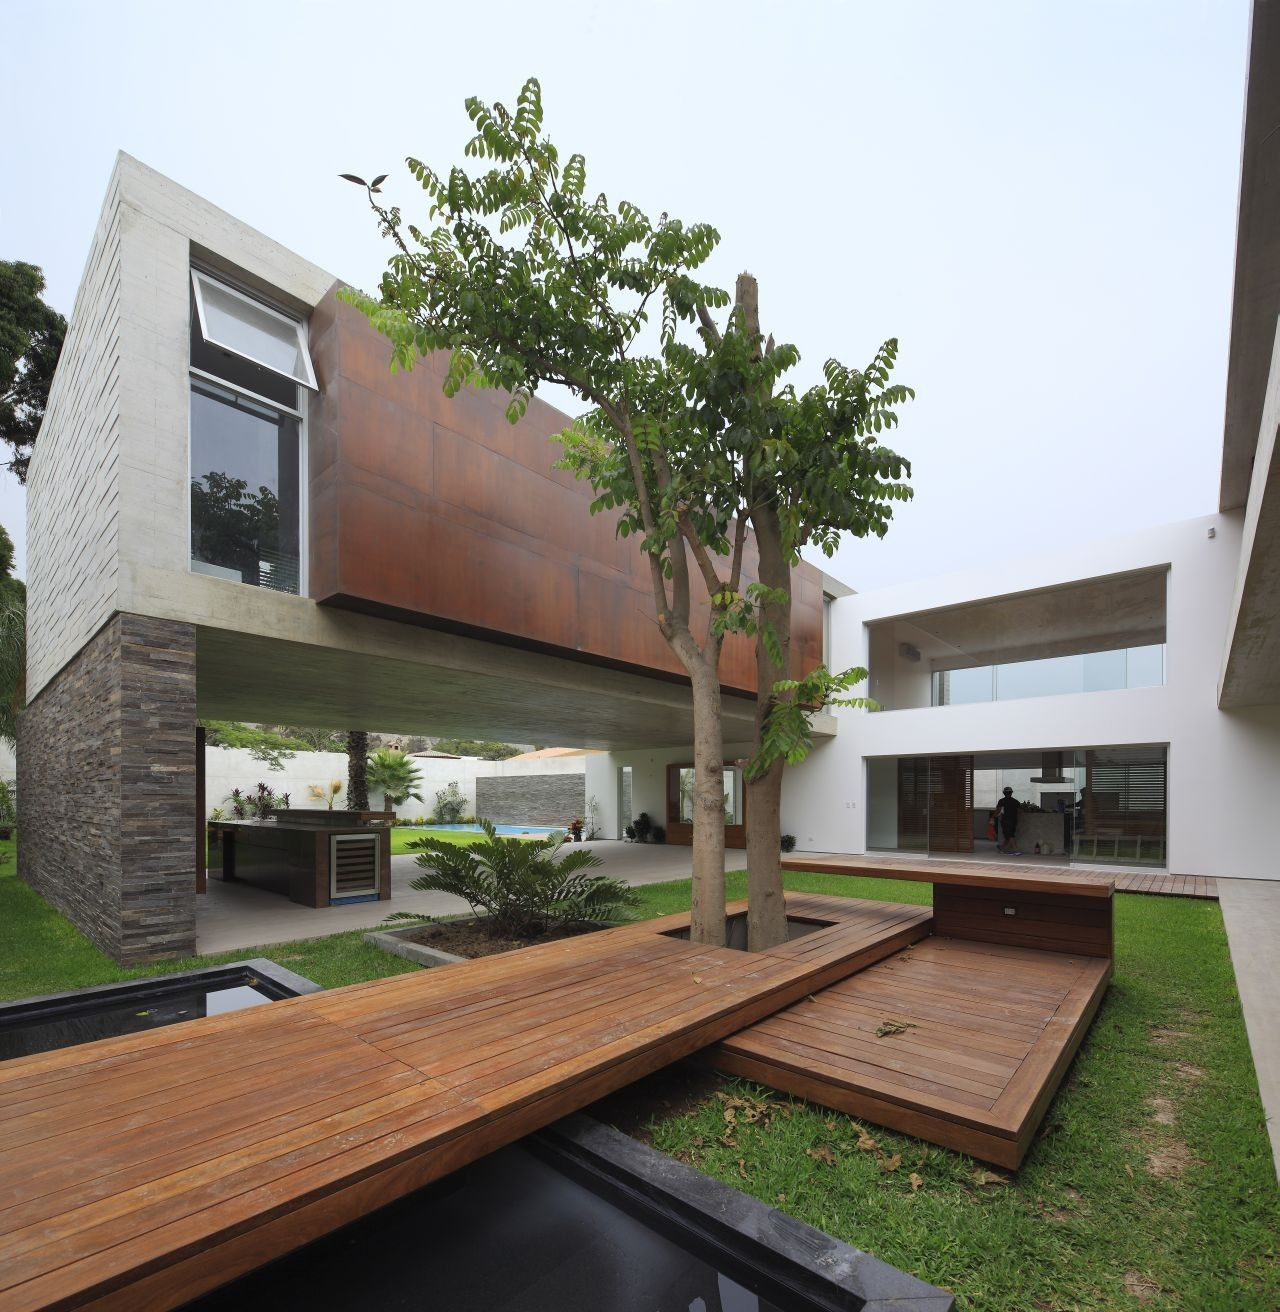 1000+ images about Houses on Pinterest House, Peru and xposed ... - ^